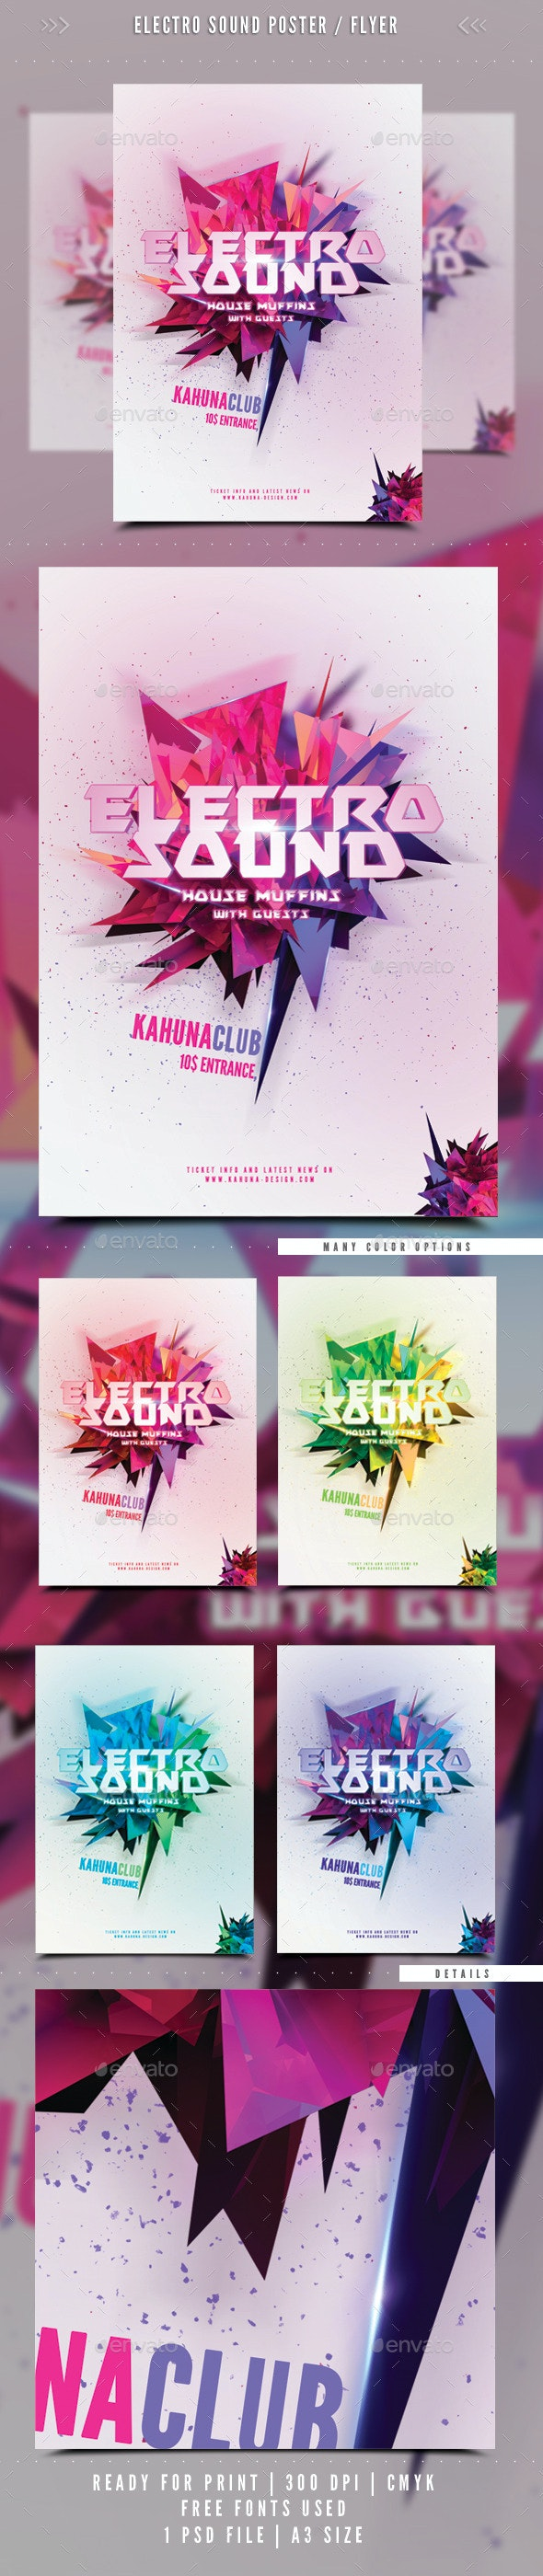 Electro Sound Poster / Flyer 02 - Clubs & Parties Events